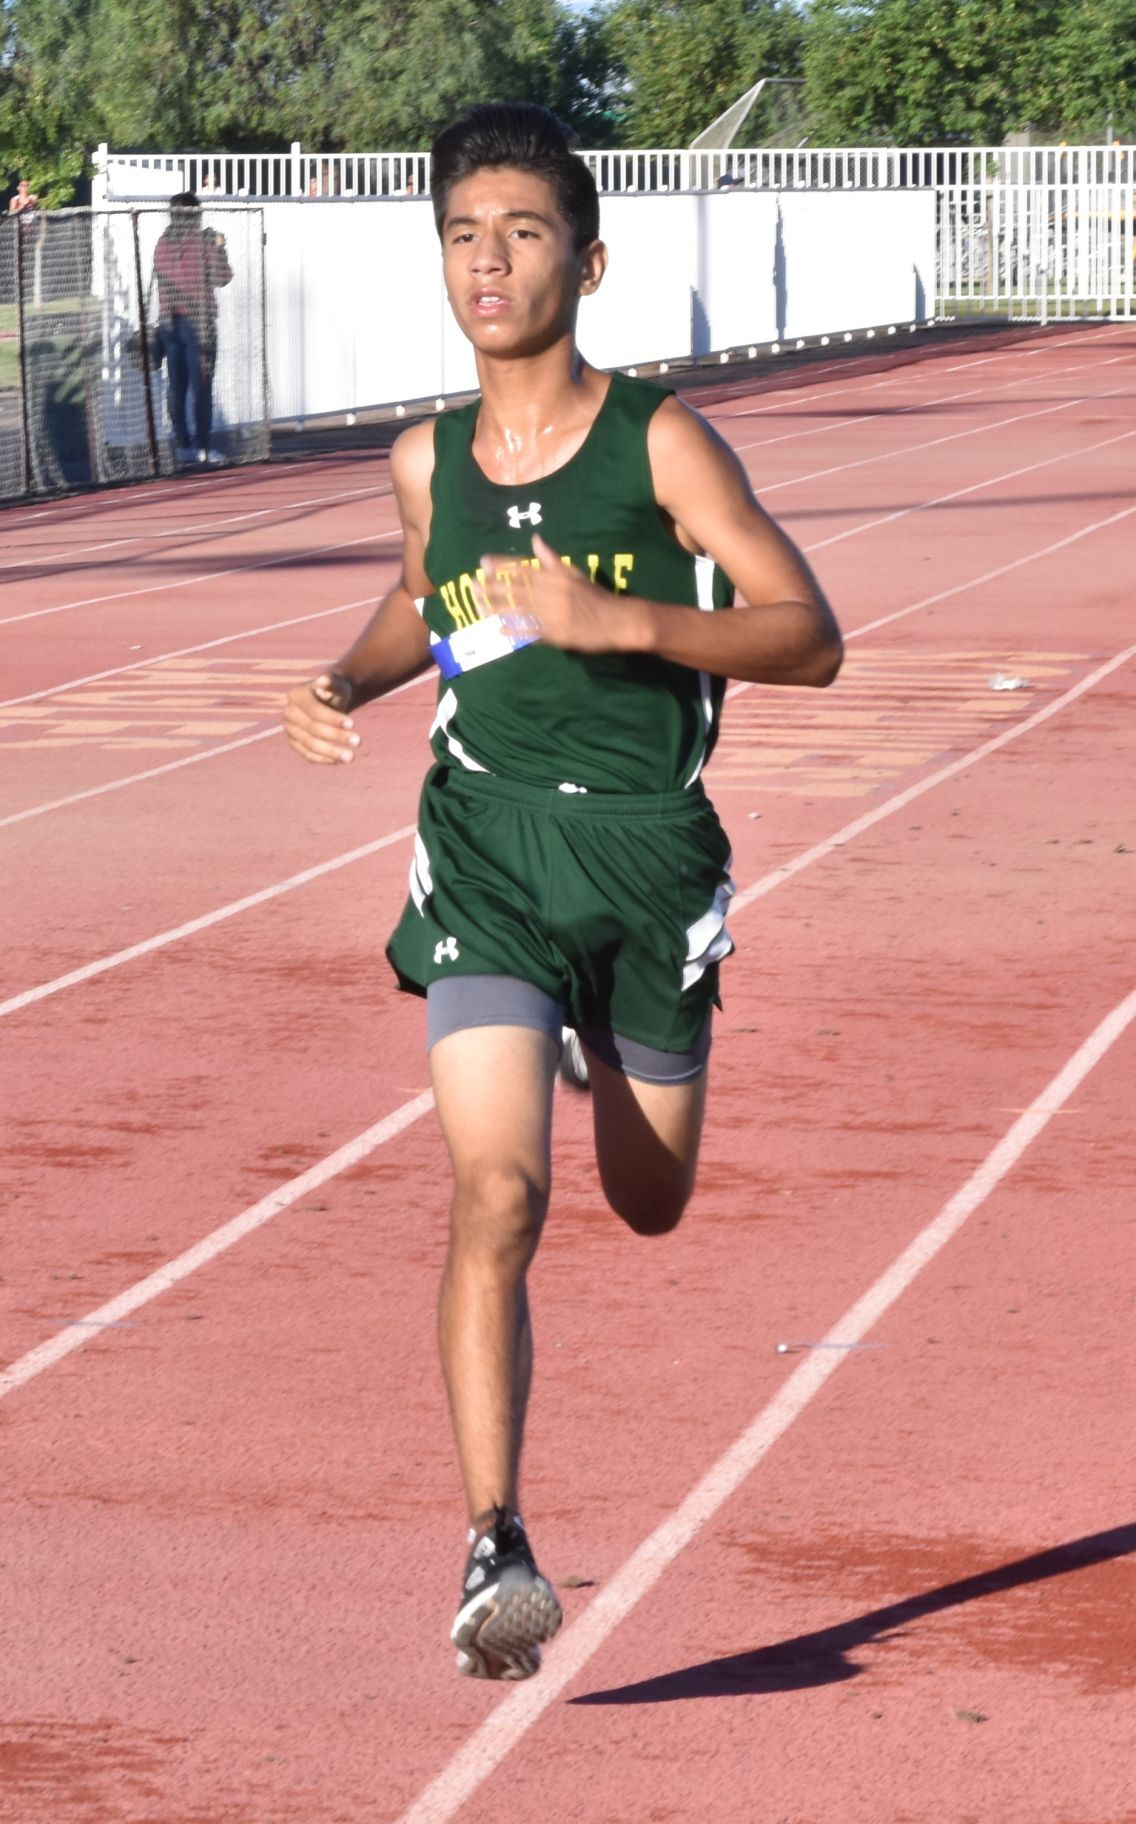 Best in league settled at IVL Track and Field Championships